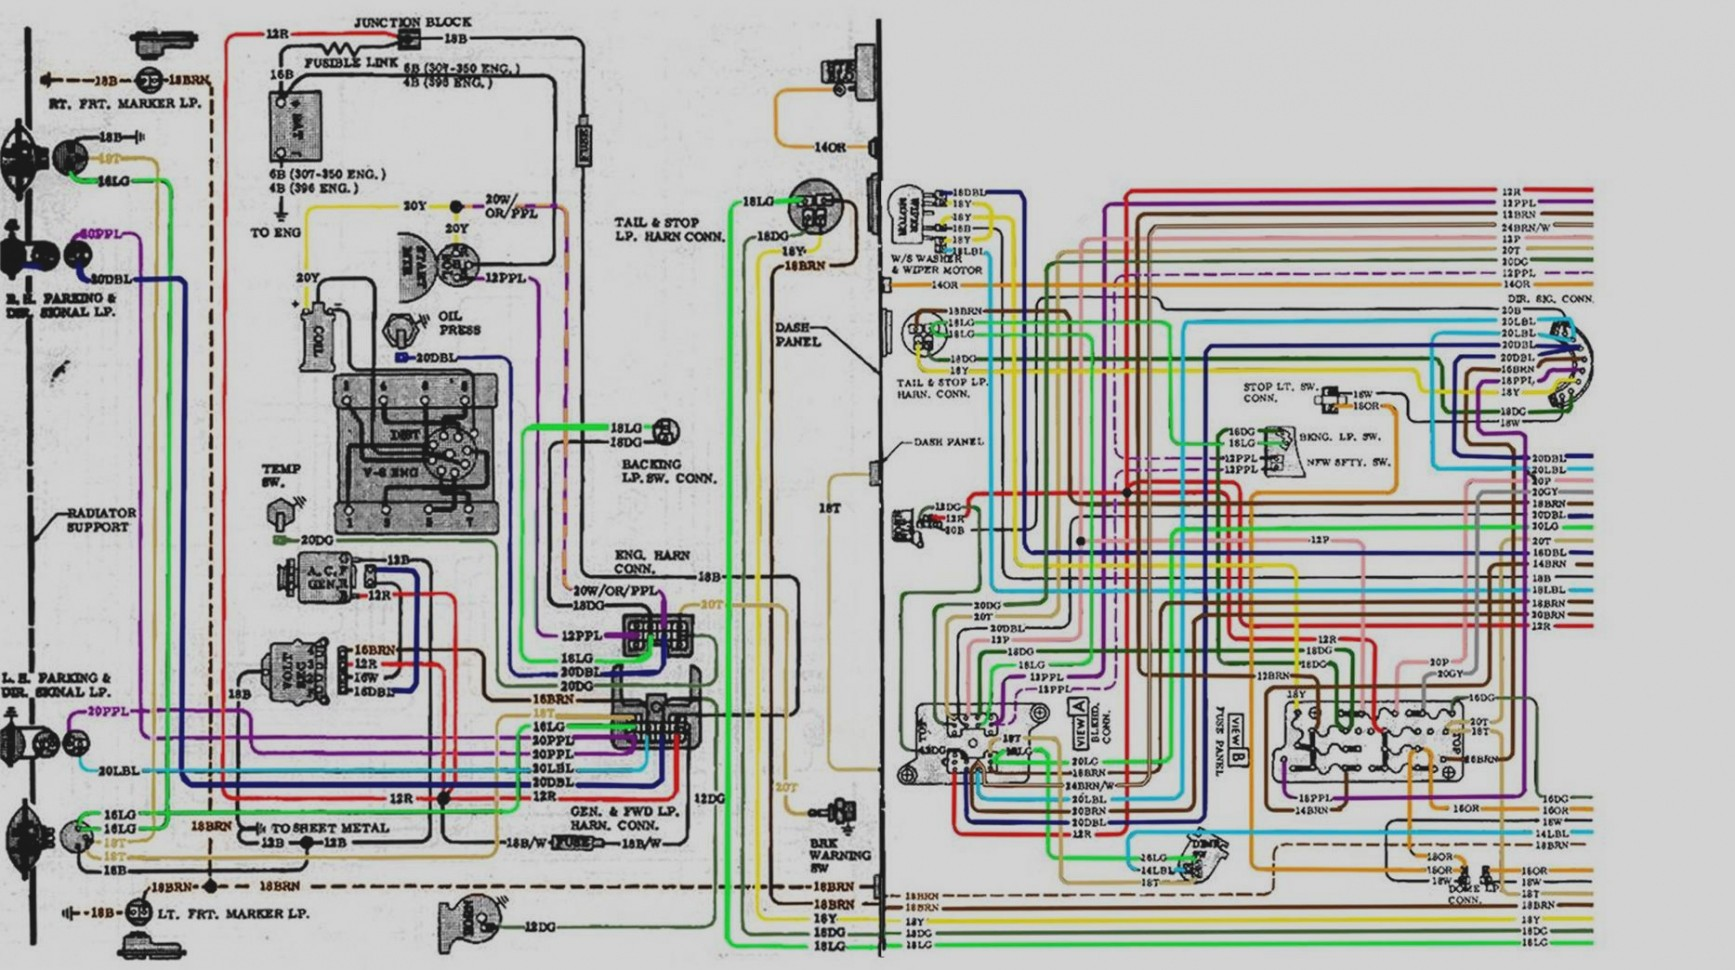 delco radio wiring diagram 1968 chevelle bookmark about wiring diagram Jensen VM9510 Wiring Harness Diagram